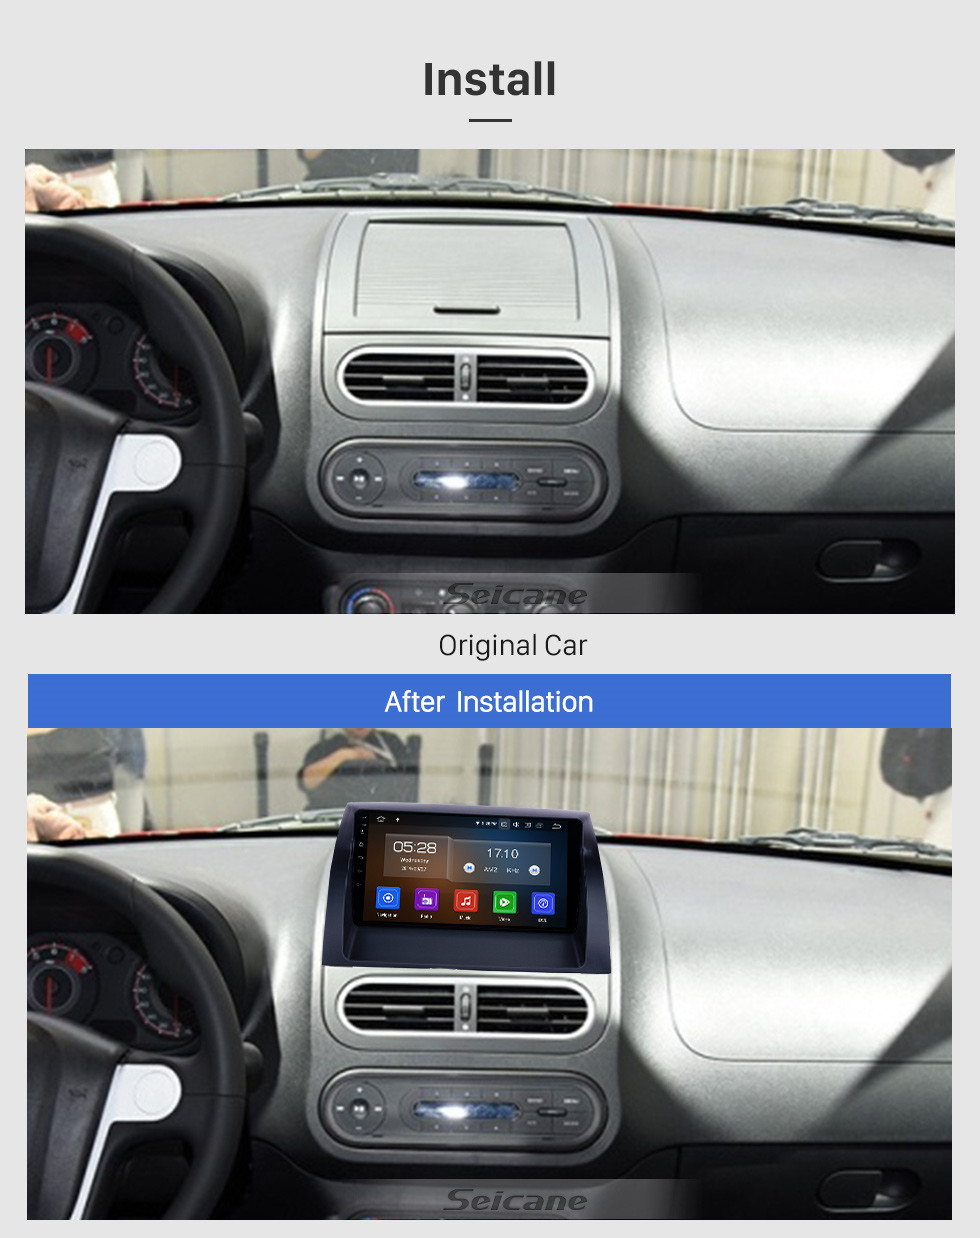 Seicane Android 10.0 9 inch GPS Navigation Radio for 2011-2016 MG3 with HD Touchscreen Carplay Bluetooth Mirror Link support TPMS Digital TV